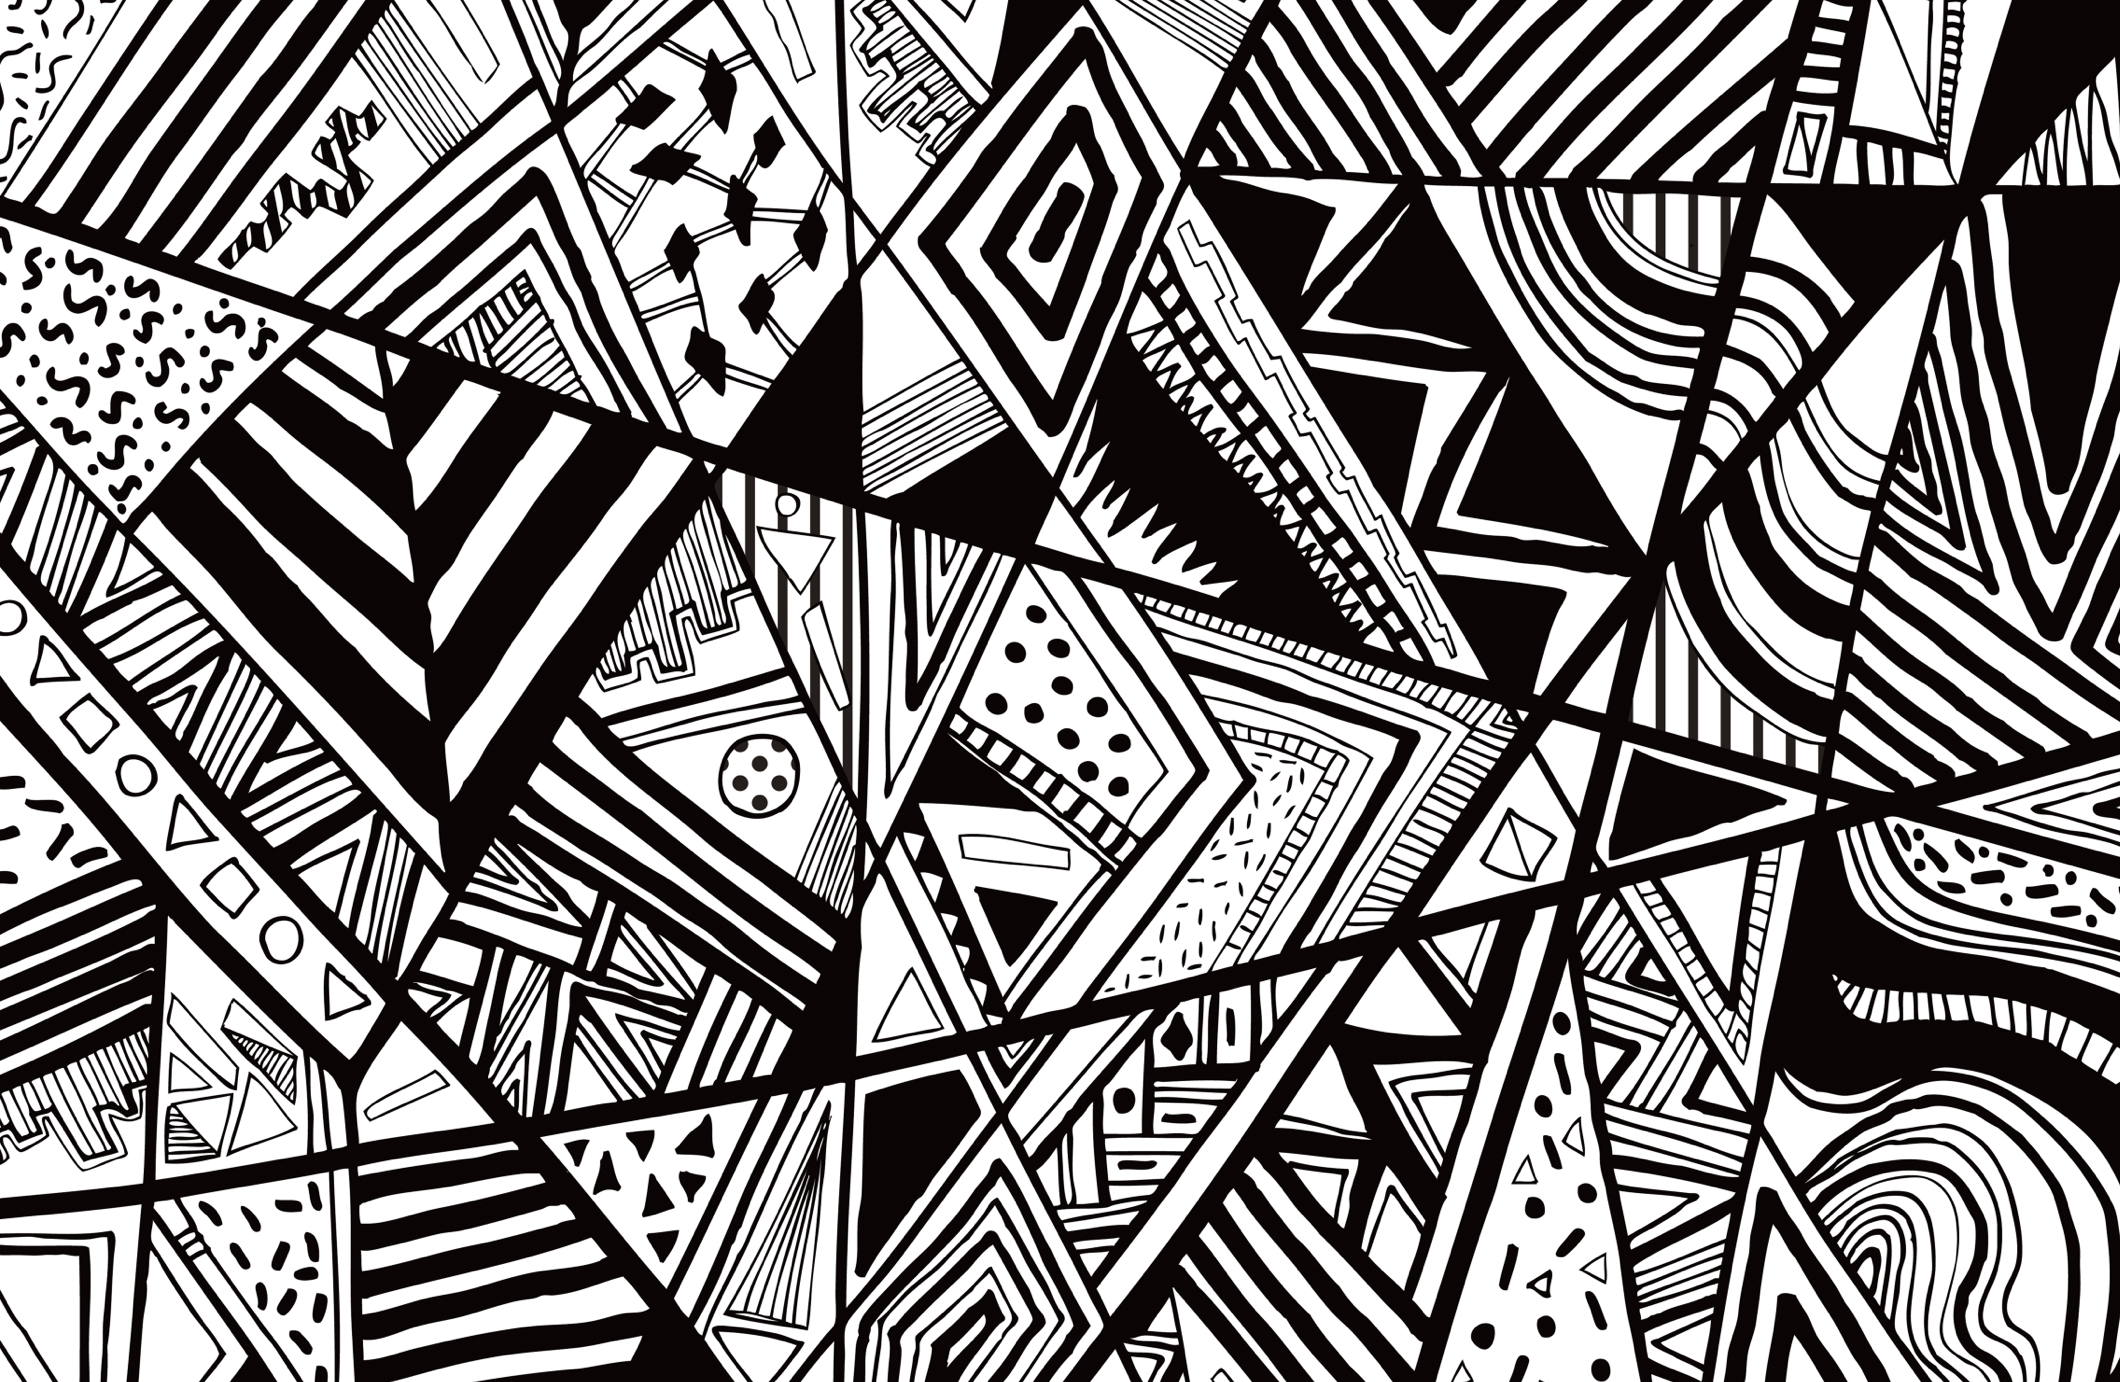 Line Art Design Abstract : Black white abstract pattern vector line drawing graphic